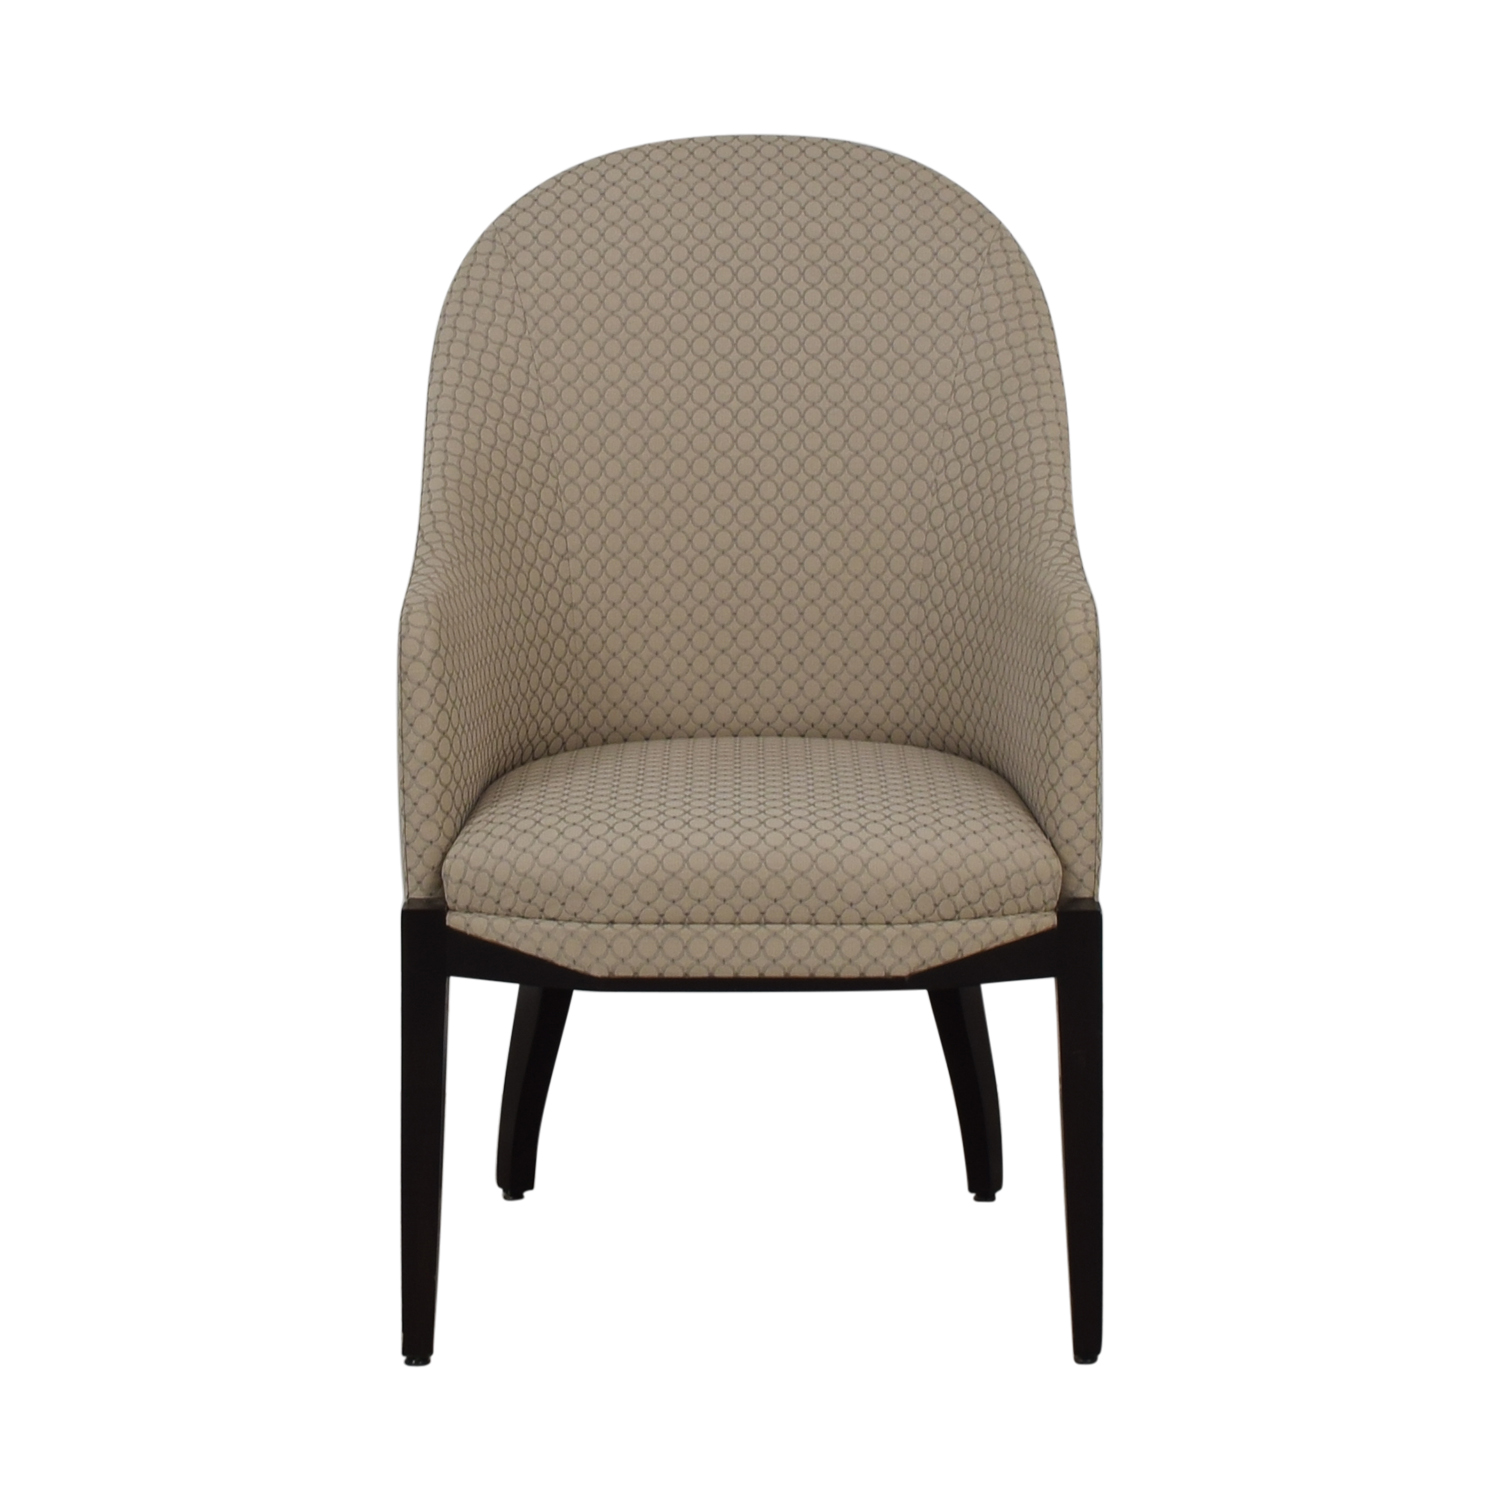 Furniture Masters Furniture Masters Beige Circle Chair Accent Chairs